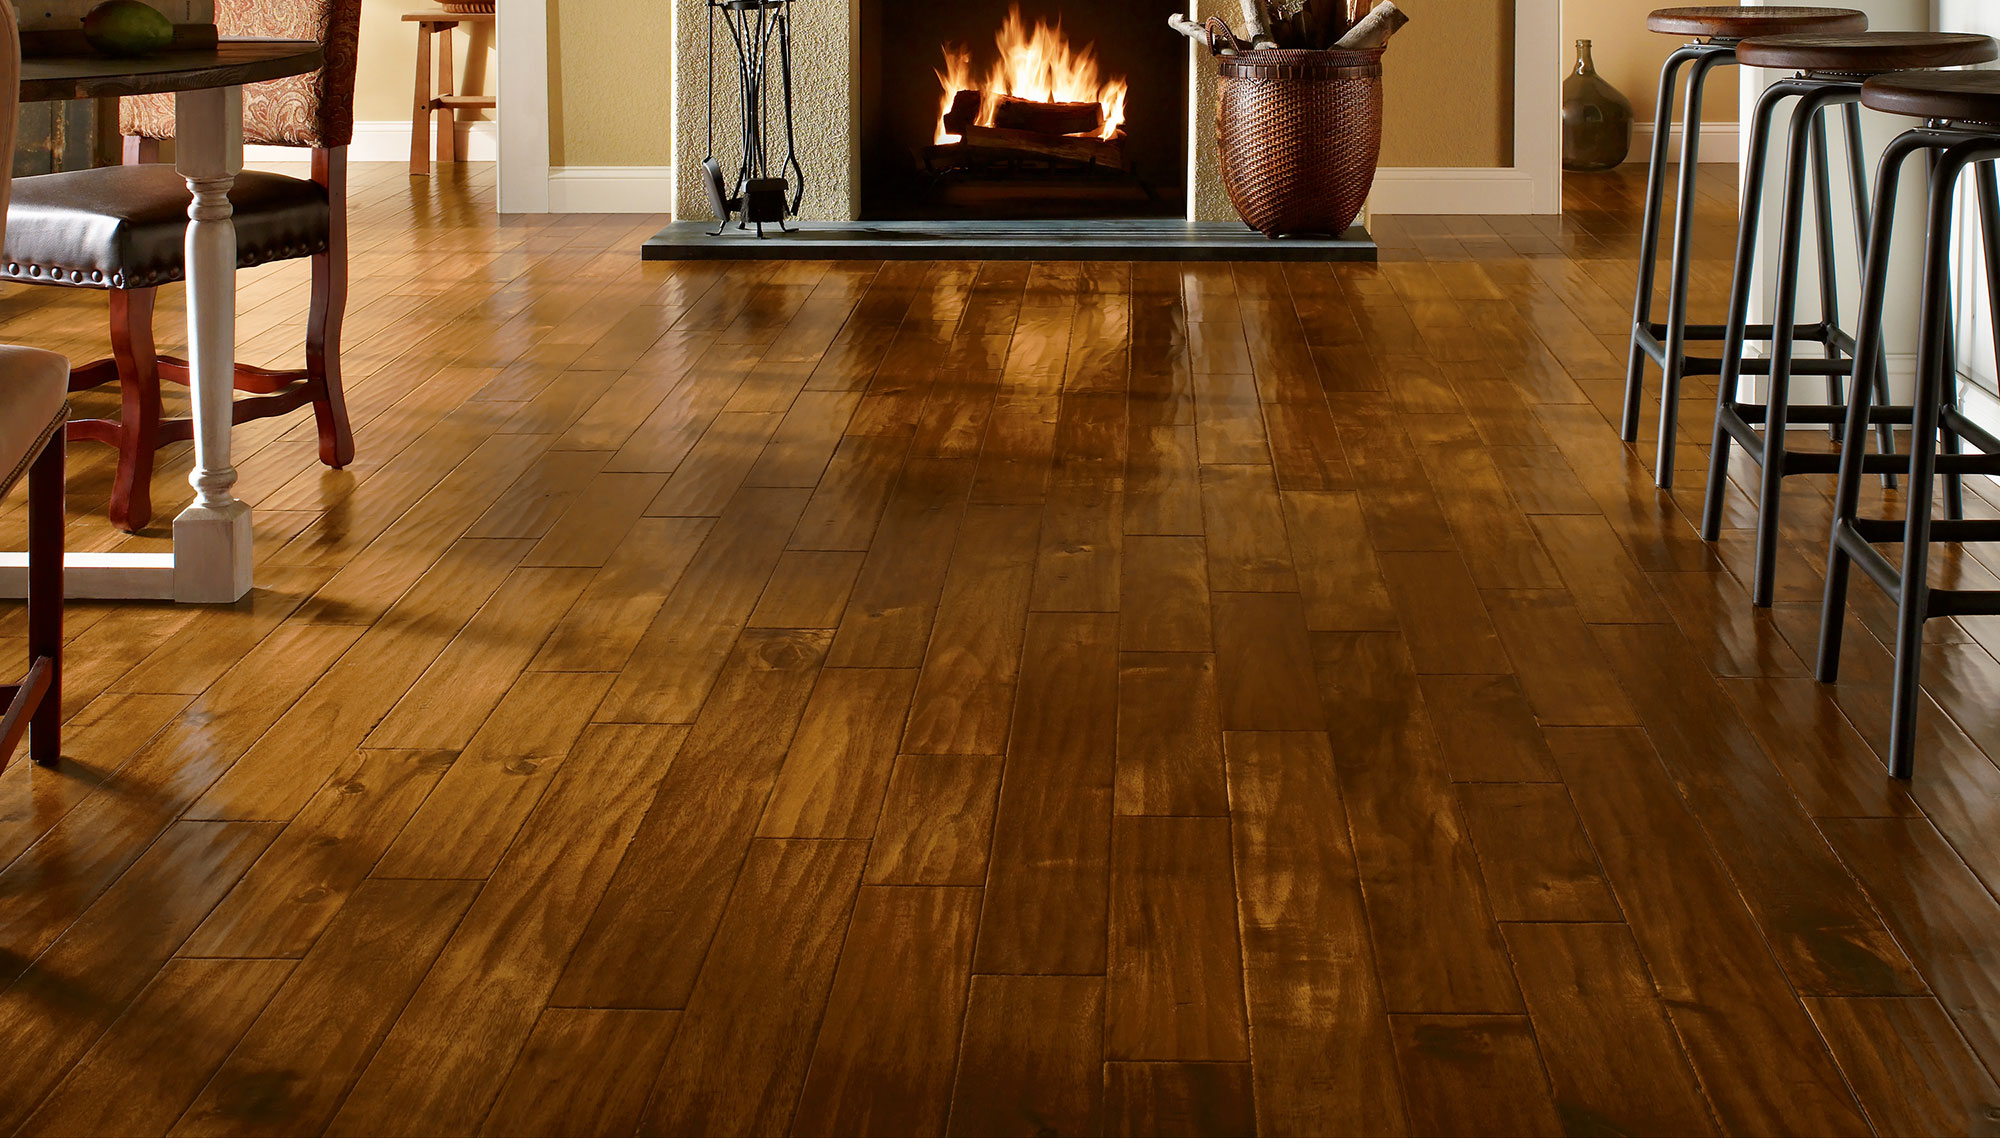 Natural Hardwood Floor Cleaning floor